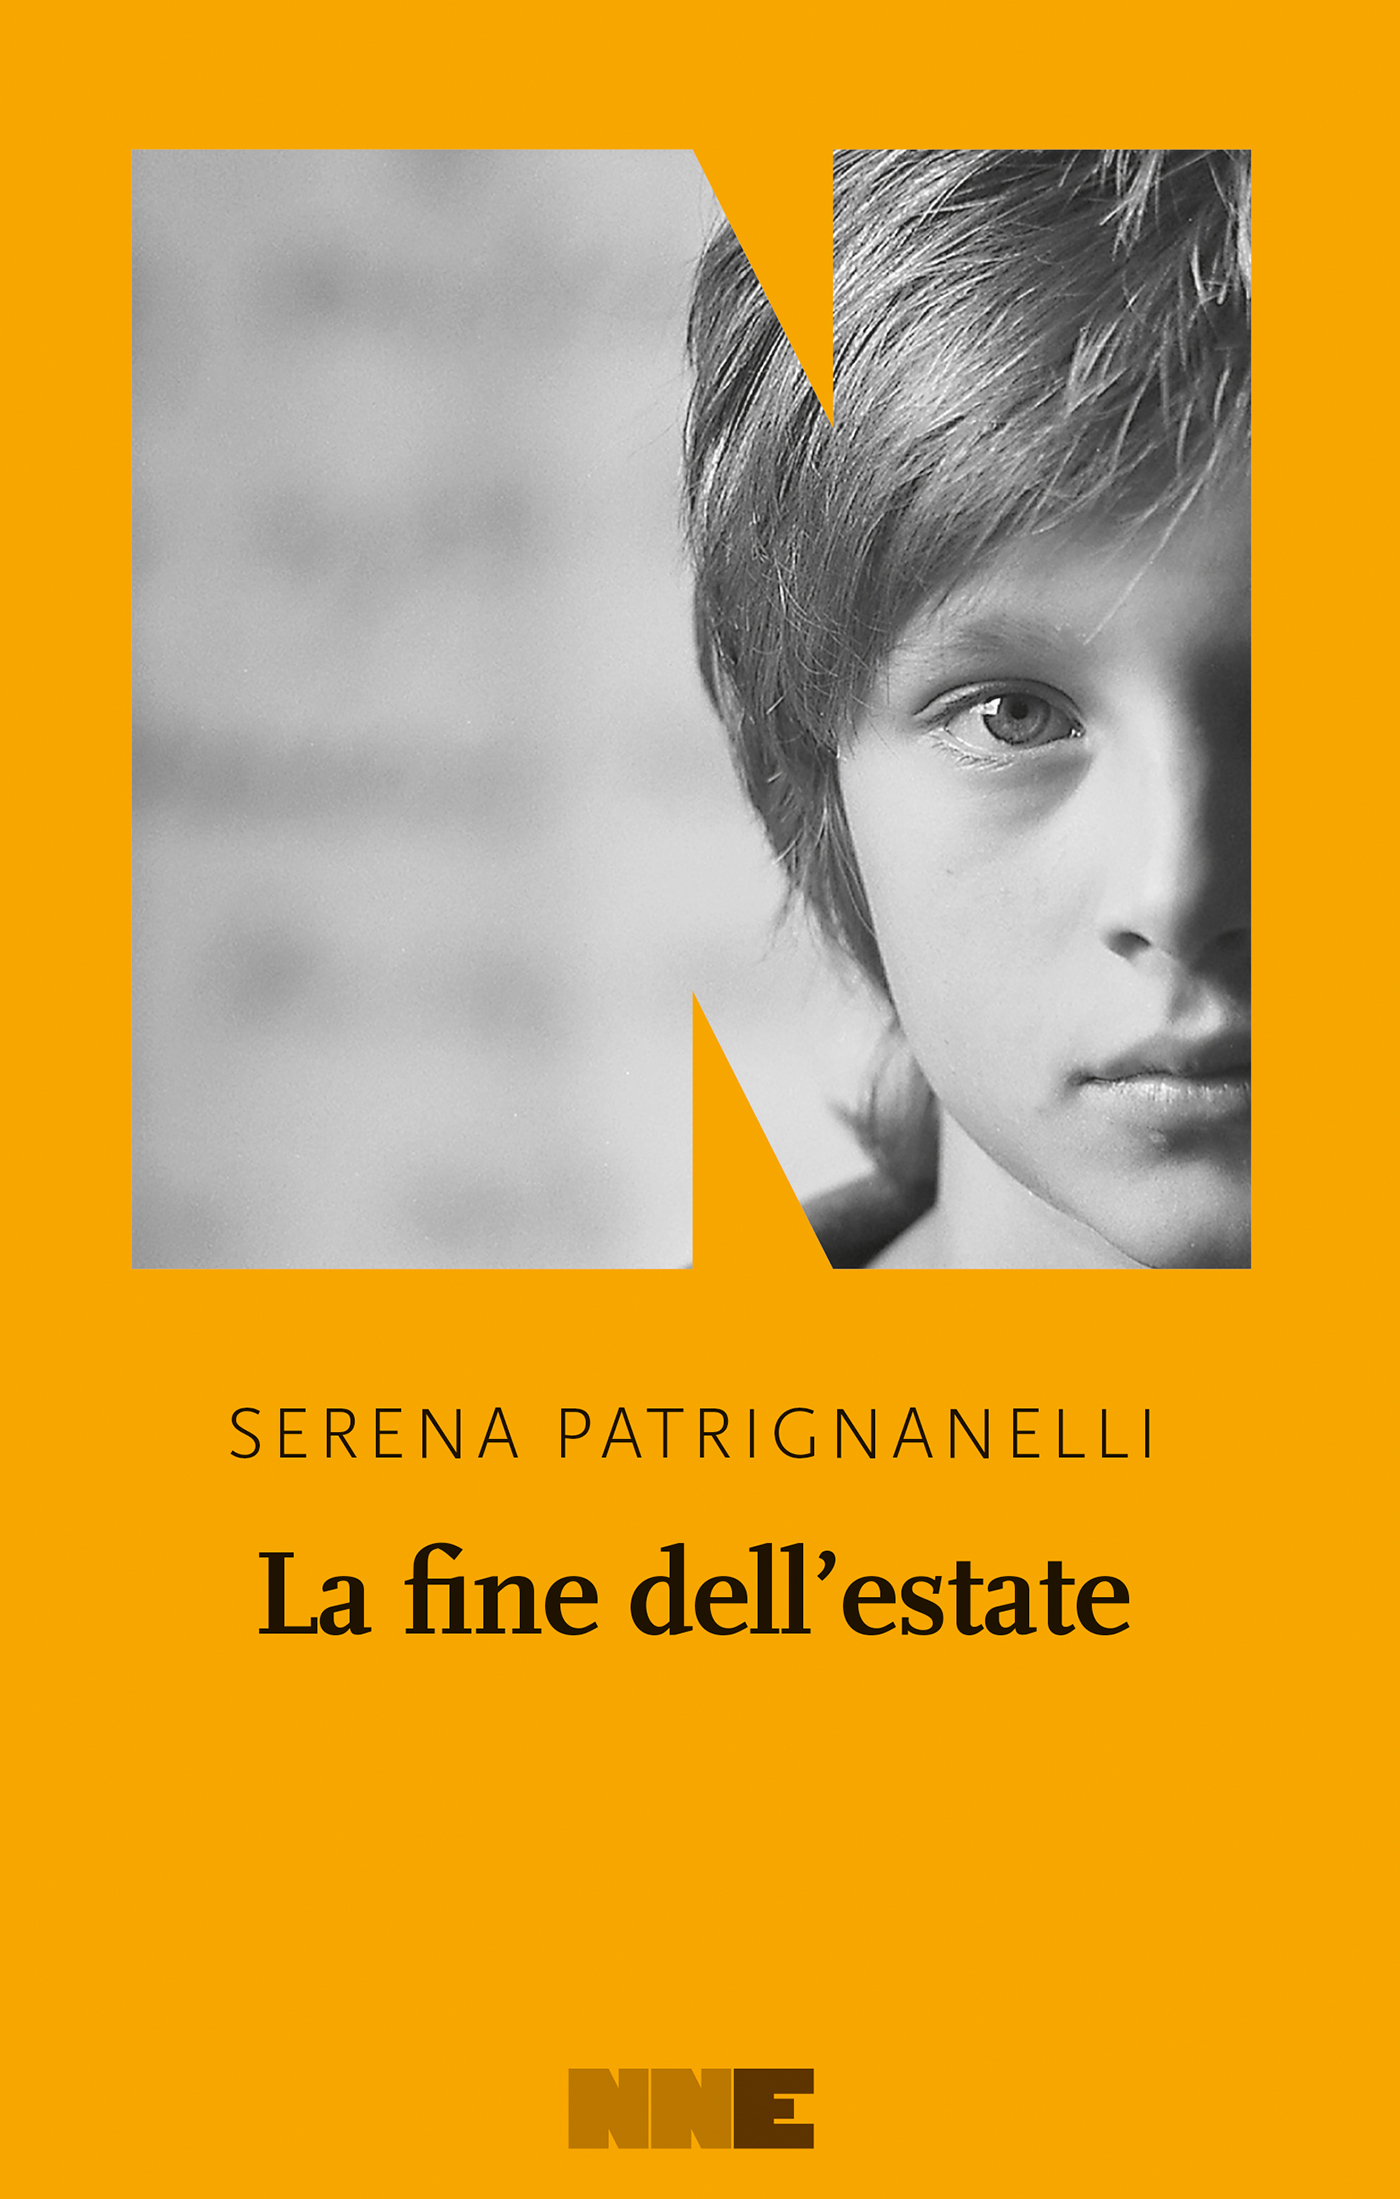 Cover_Patrignanelli_web